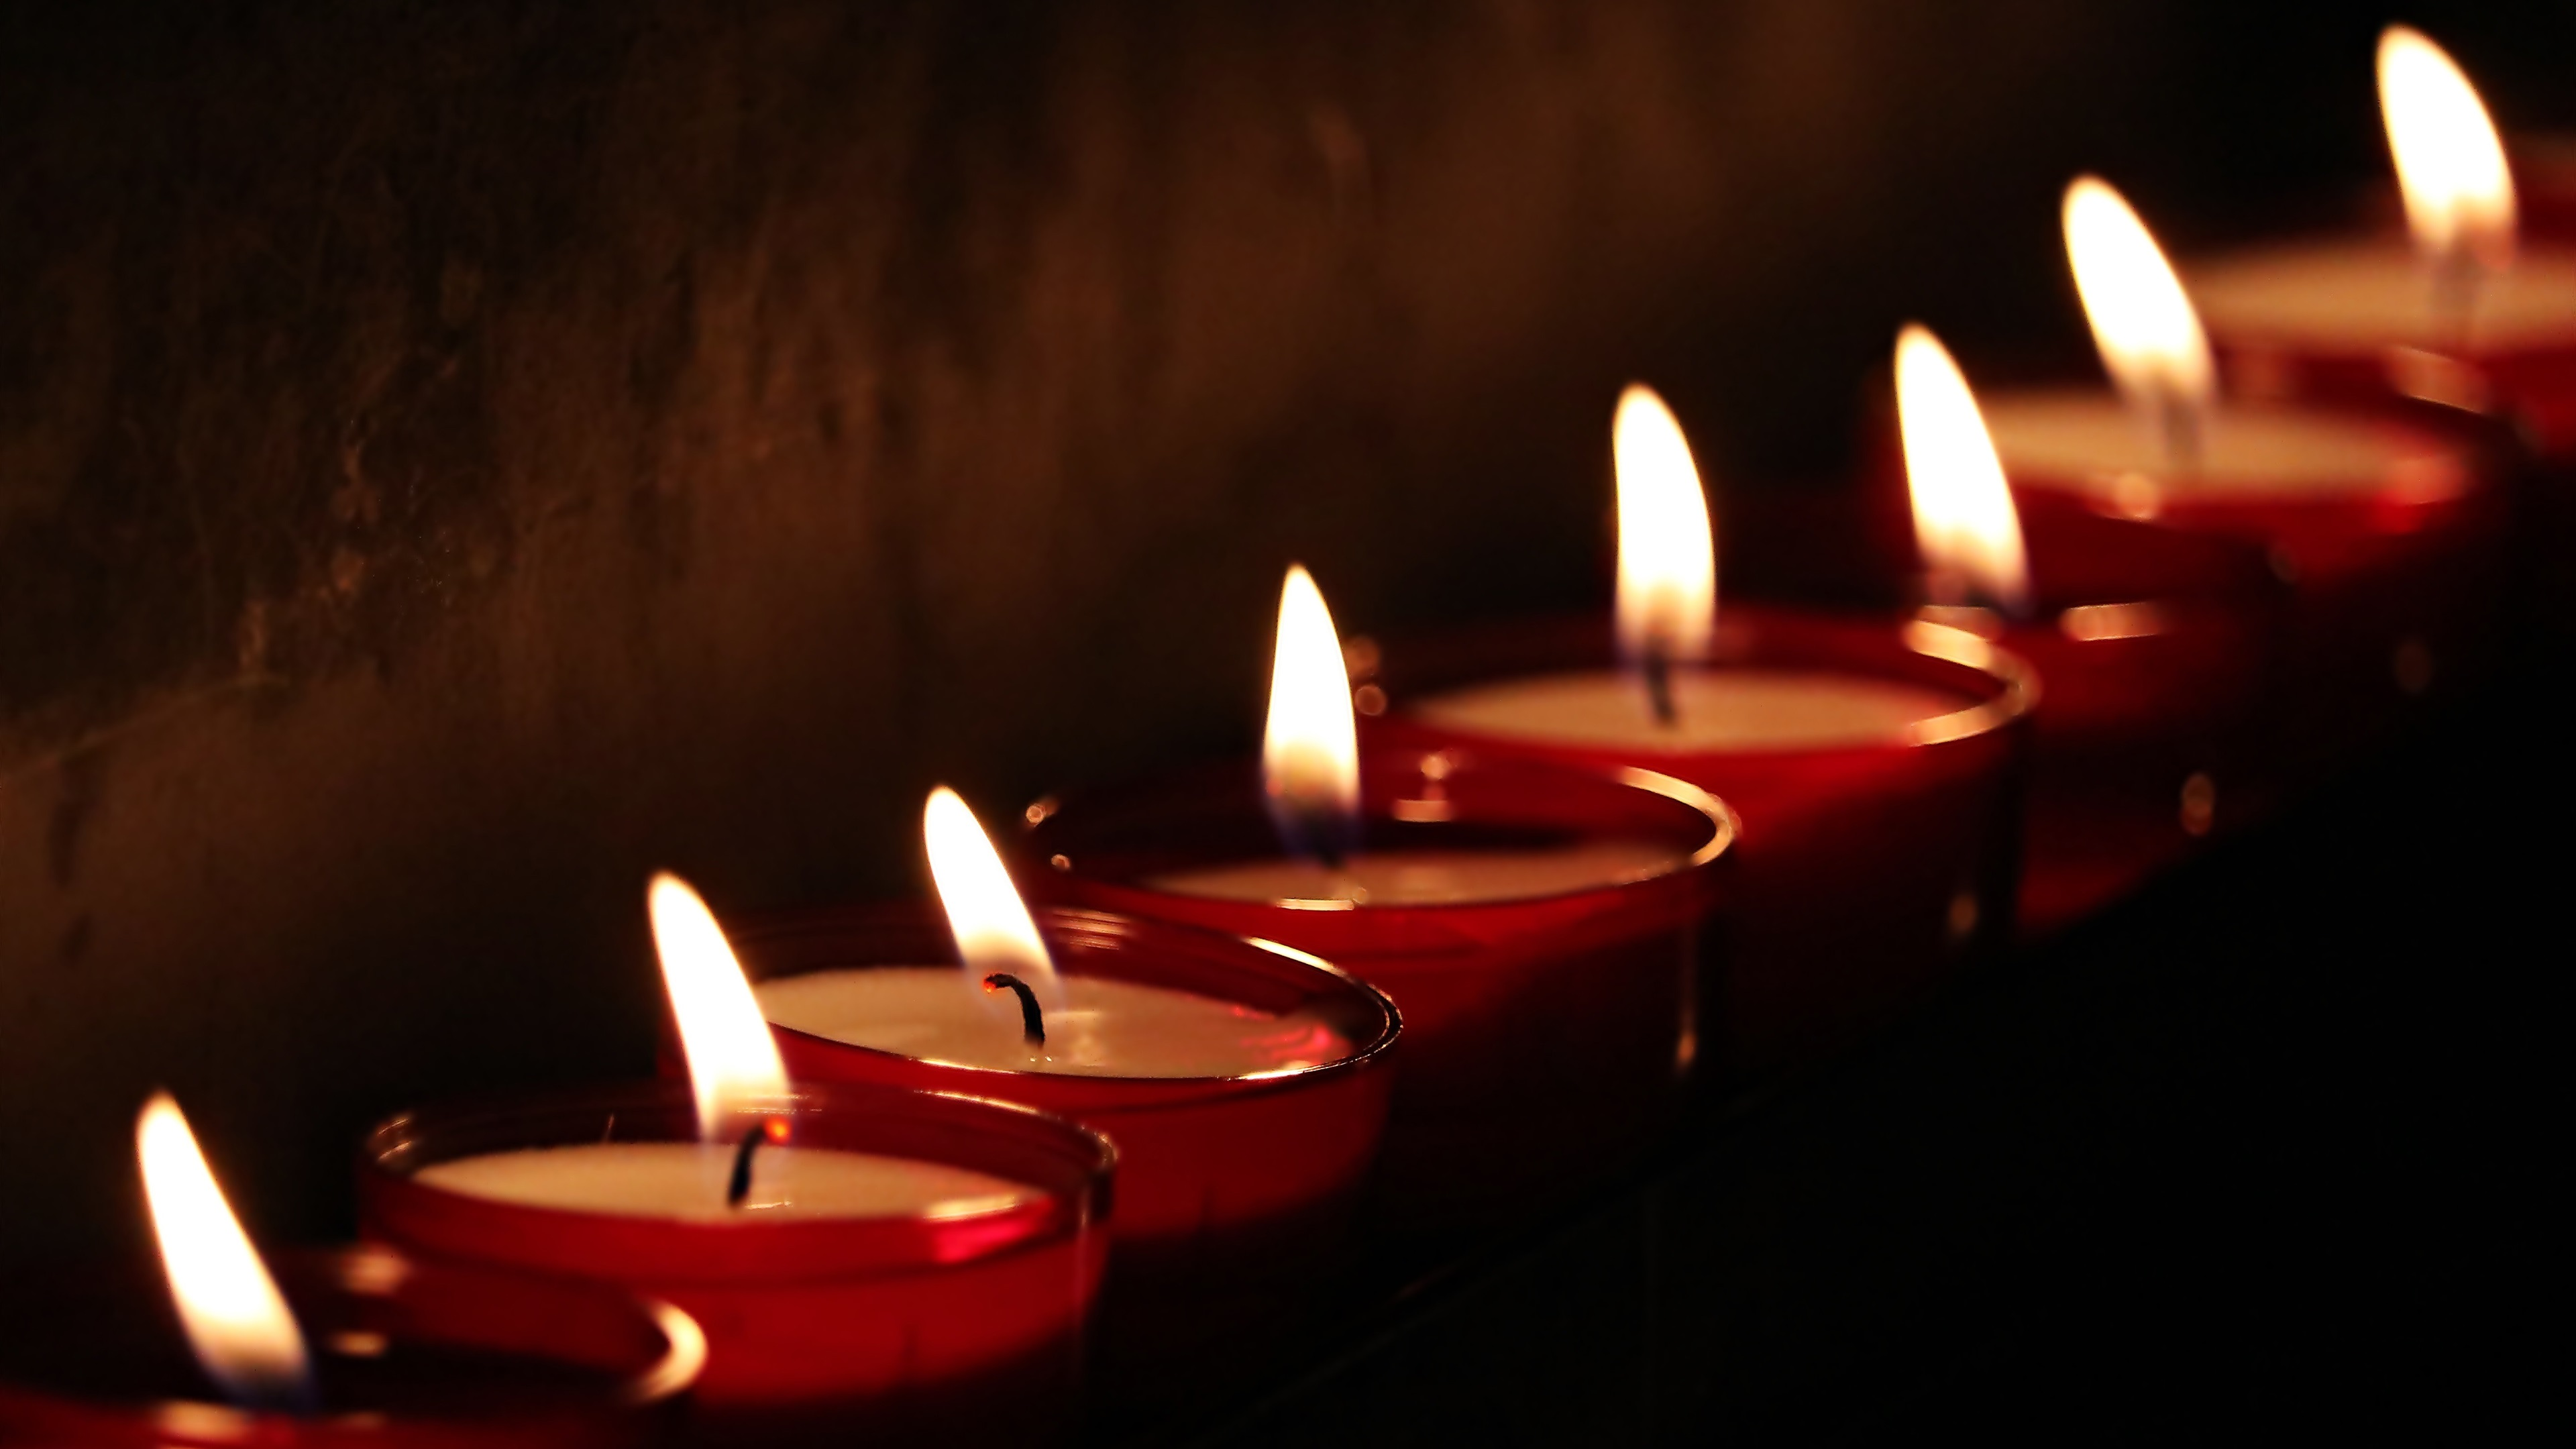 Wallpaper Candles Fire Flame Black Background 3840x2160 Uhd 4k Picture Image